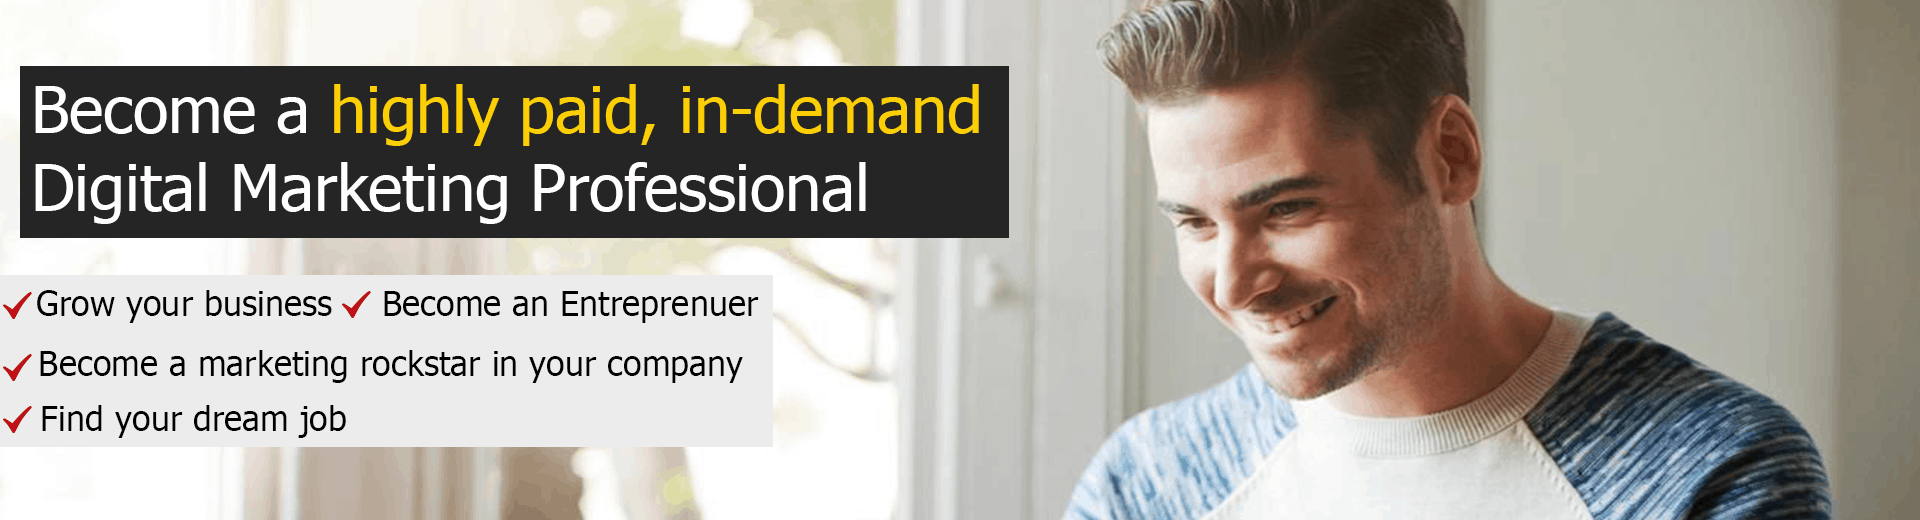 Digital marketing practical course in pakistan